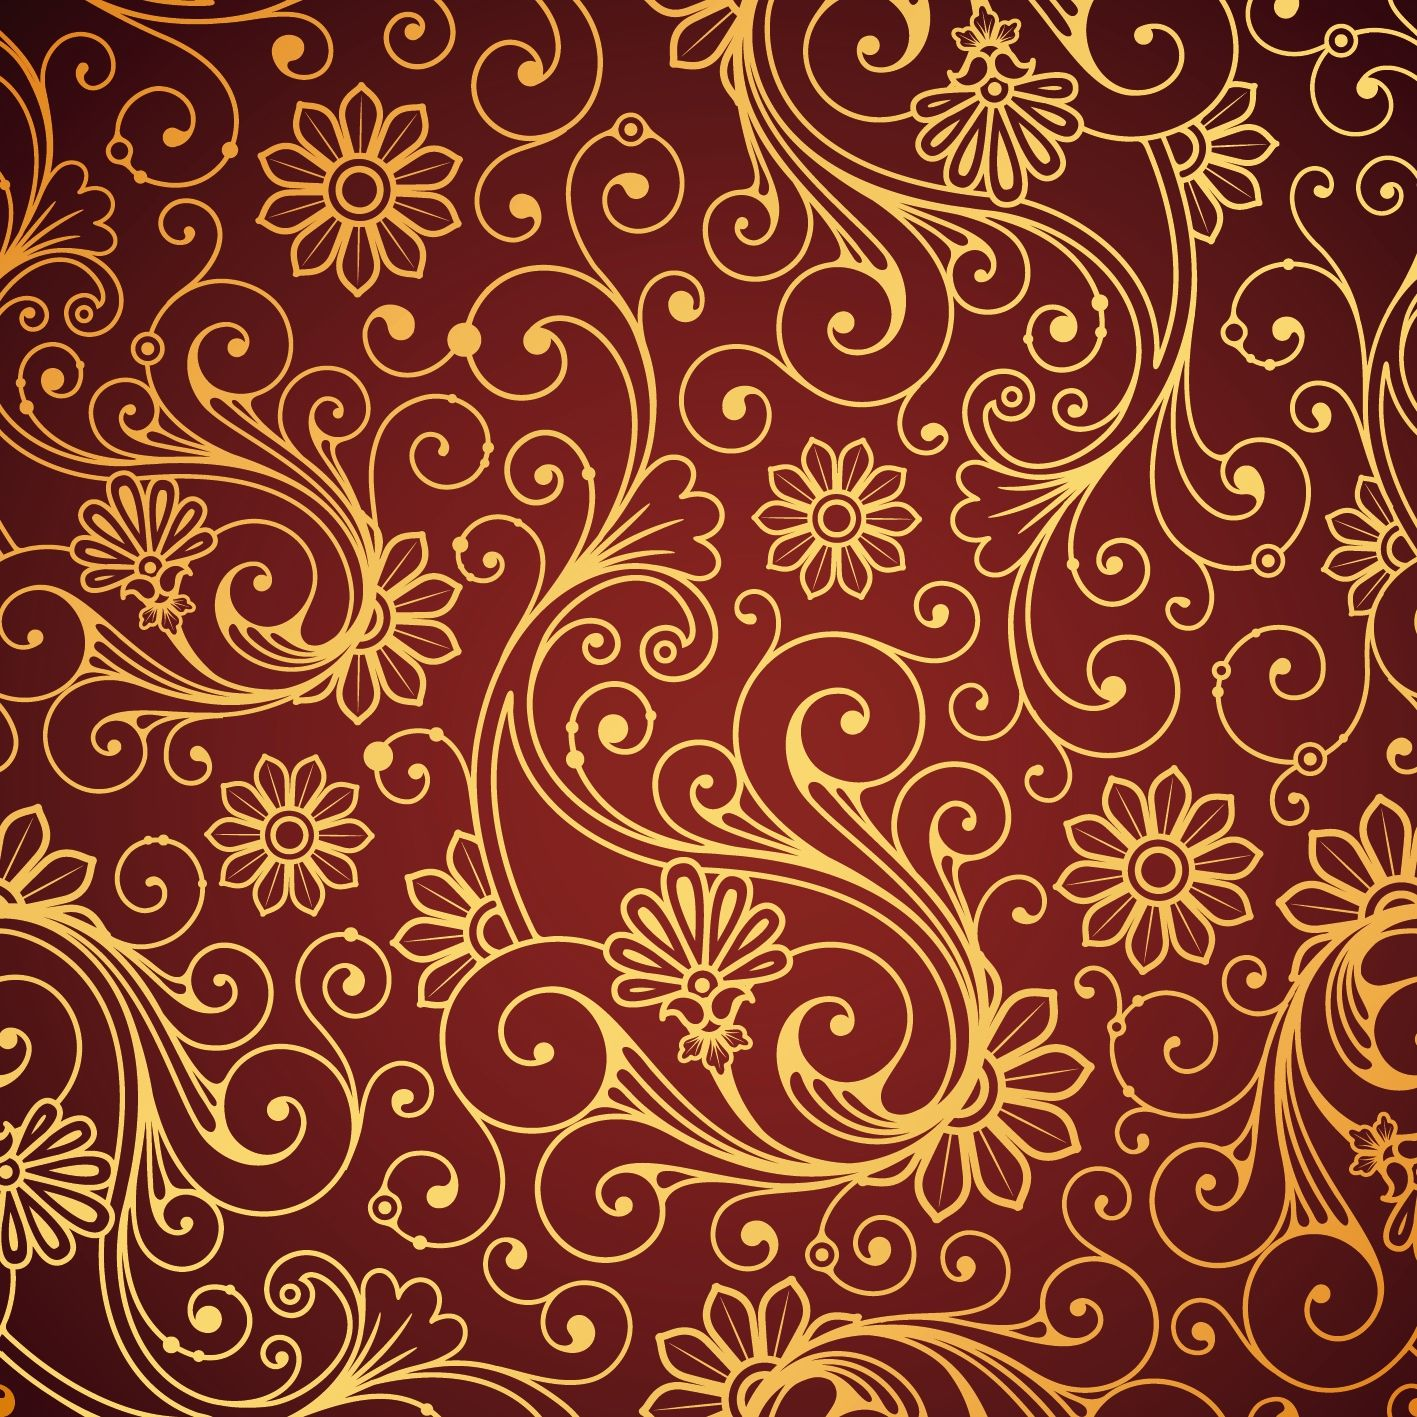 pattern background vector hd Download | Desain